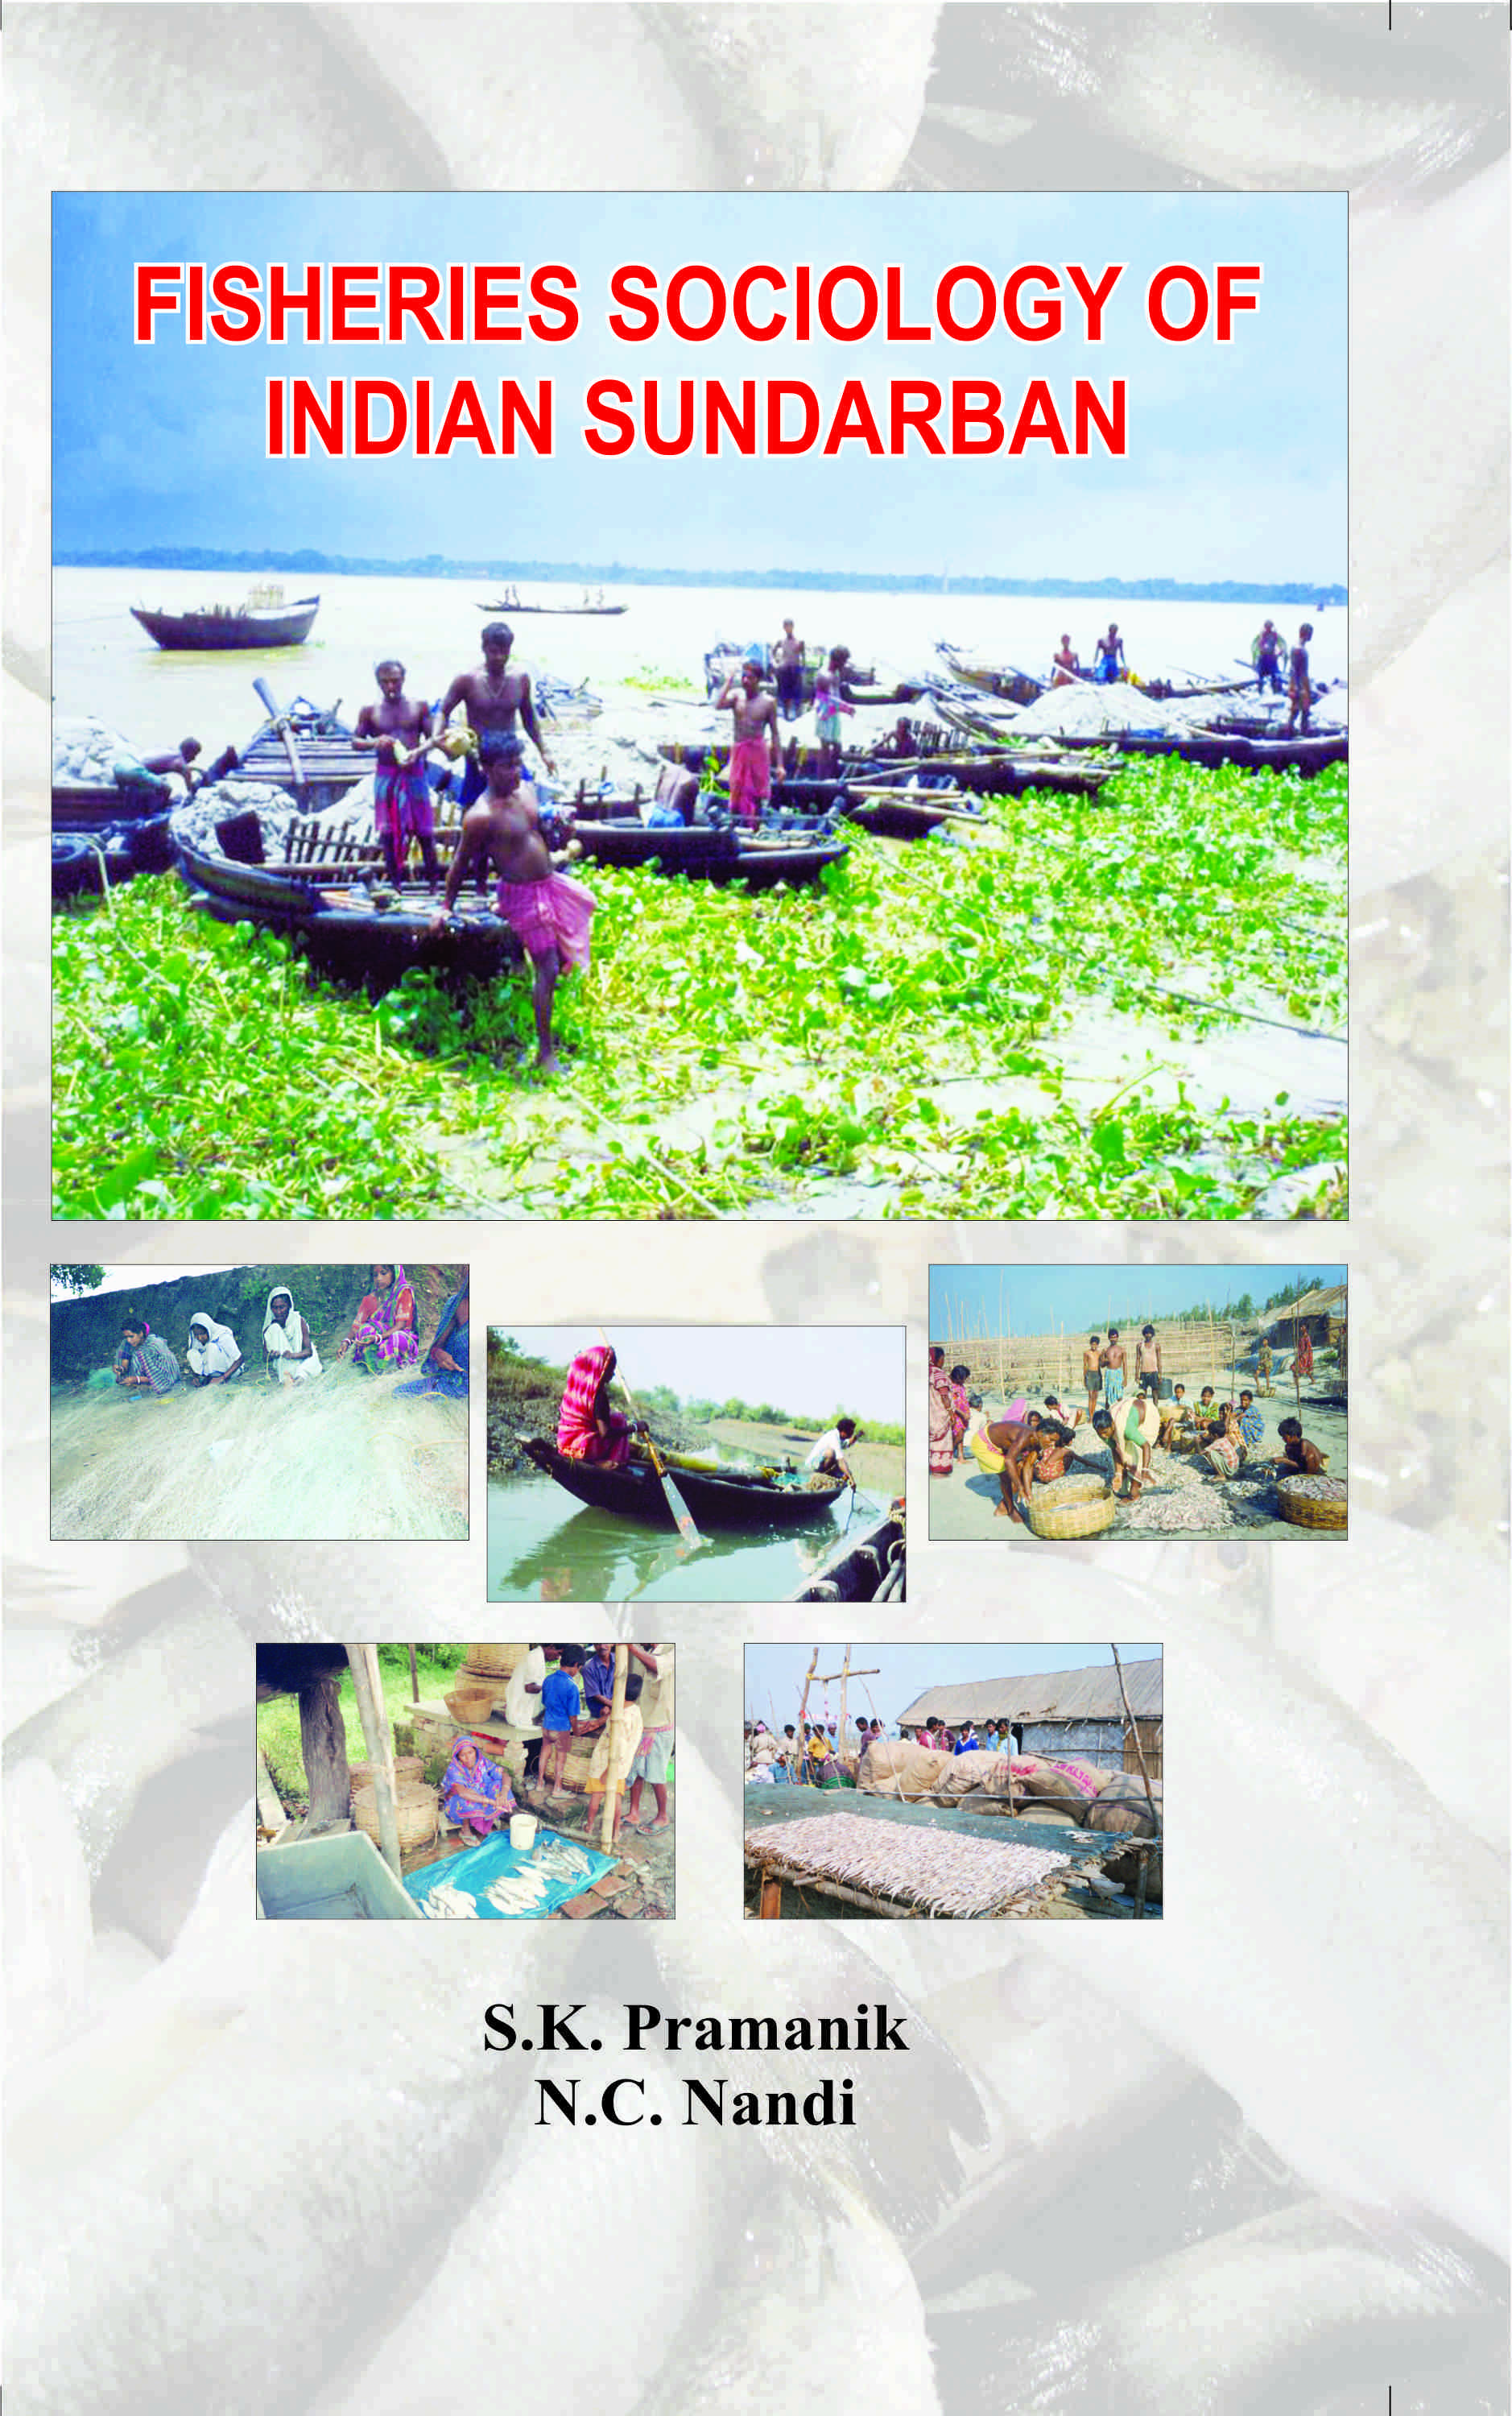 Fisheries Sociology of Indian Sunderban